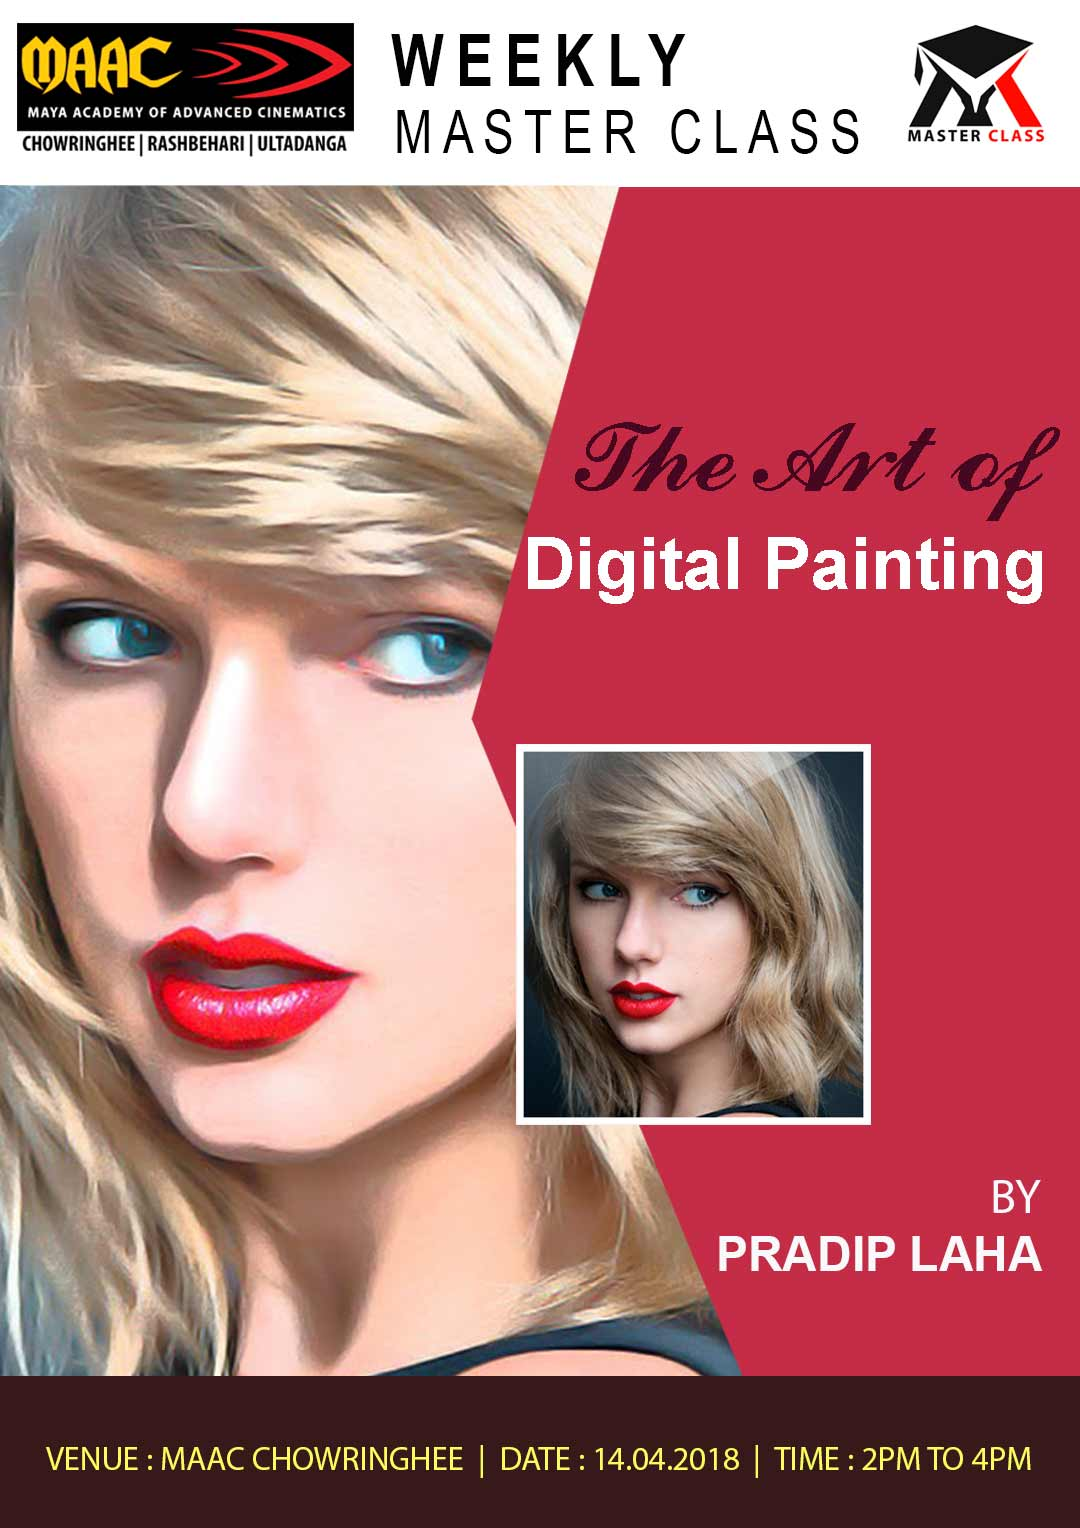 Weekly Master Class on The Art Of Digital Painting